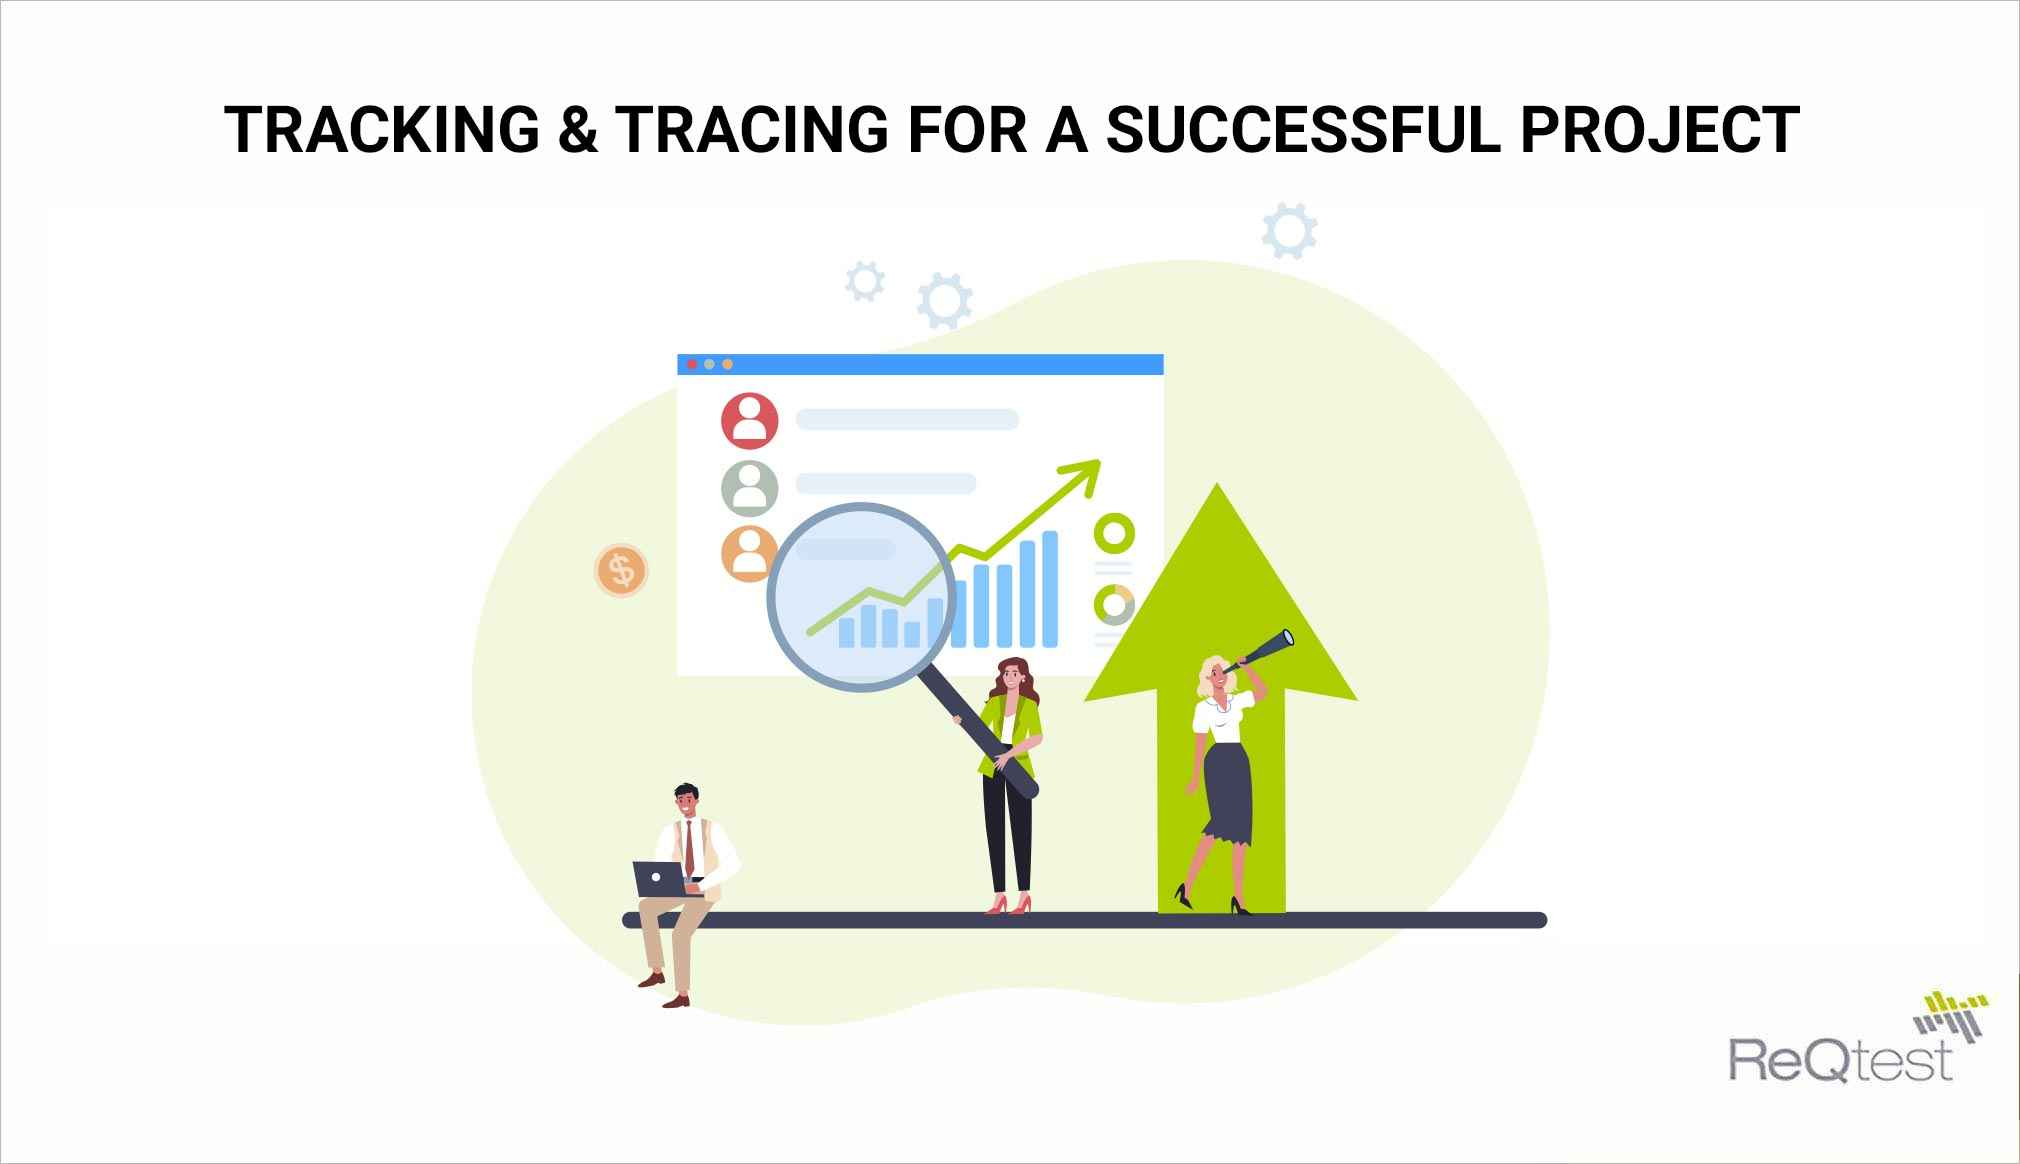 Tracking and tracing project